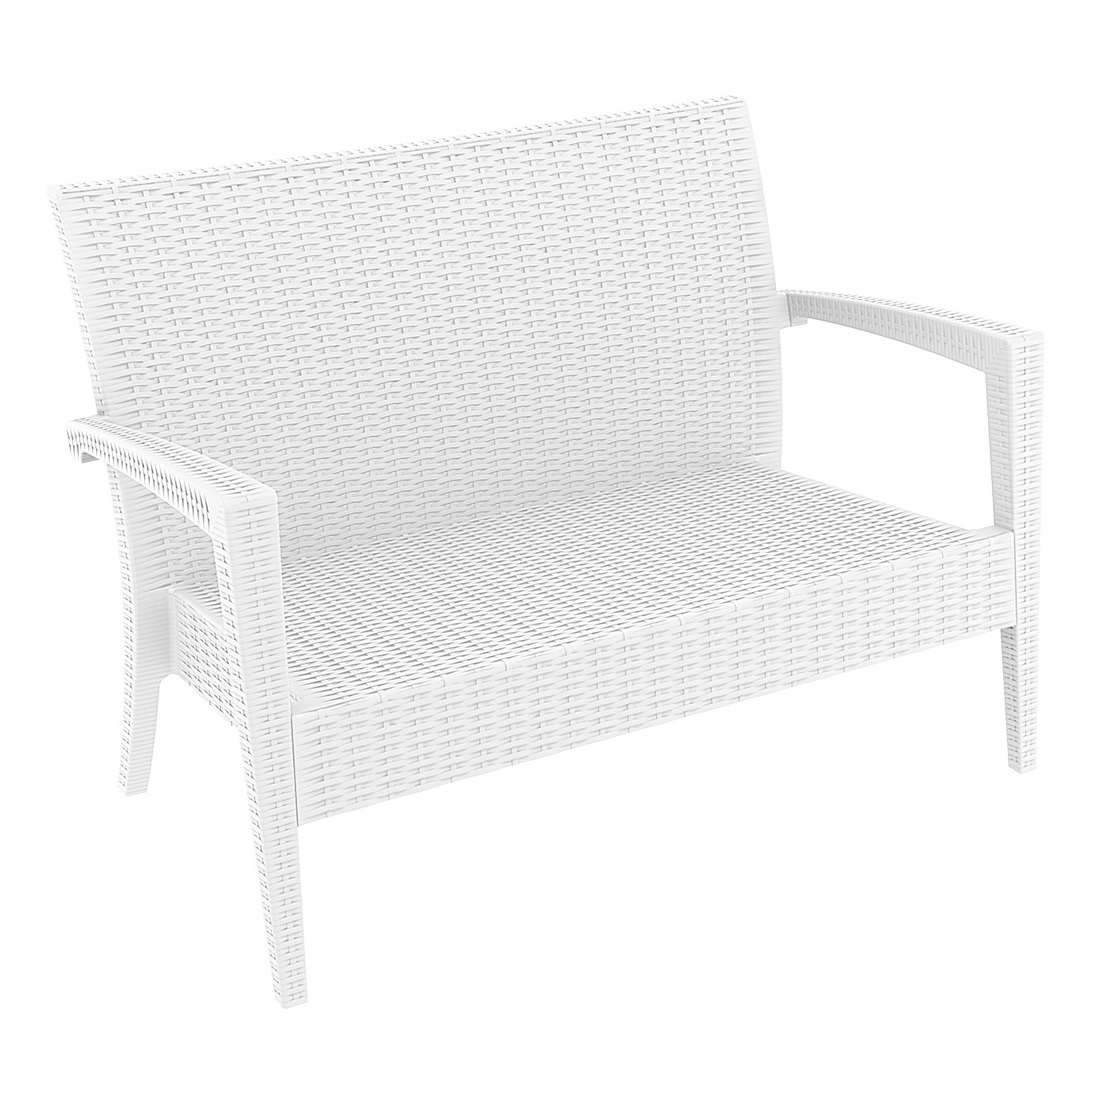 Tequila Lounge Sofa - White